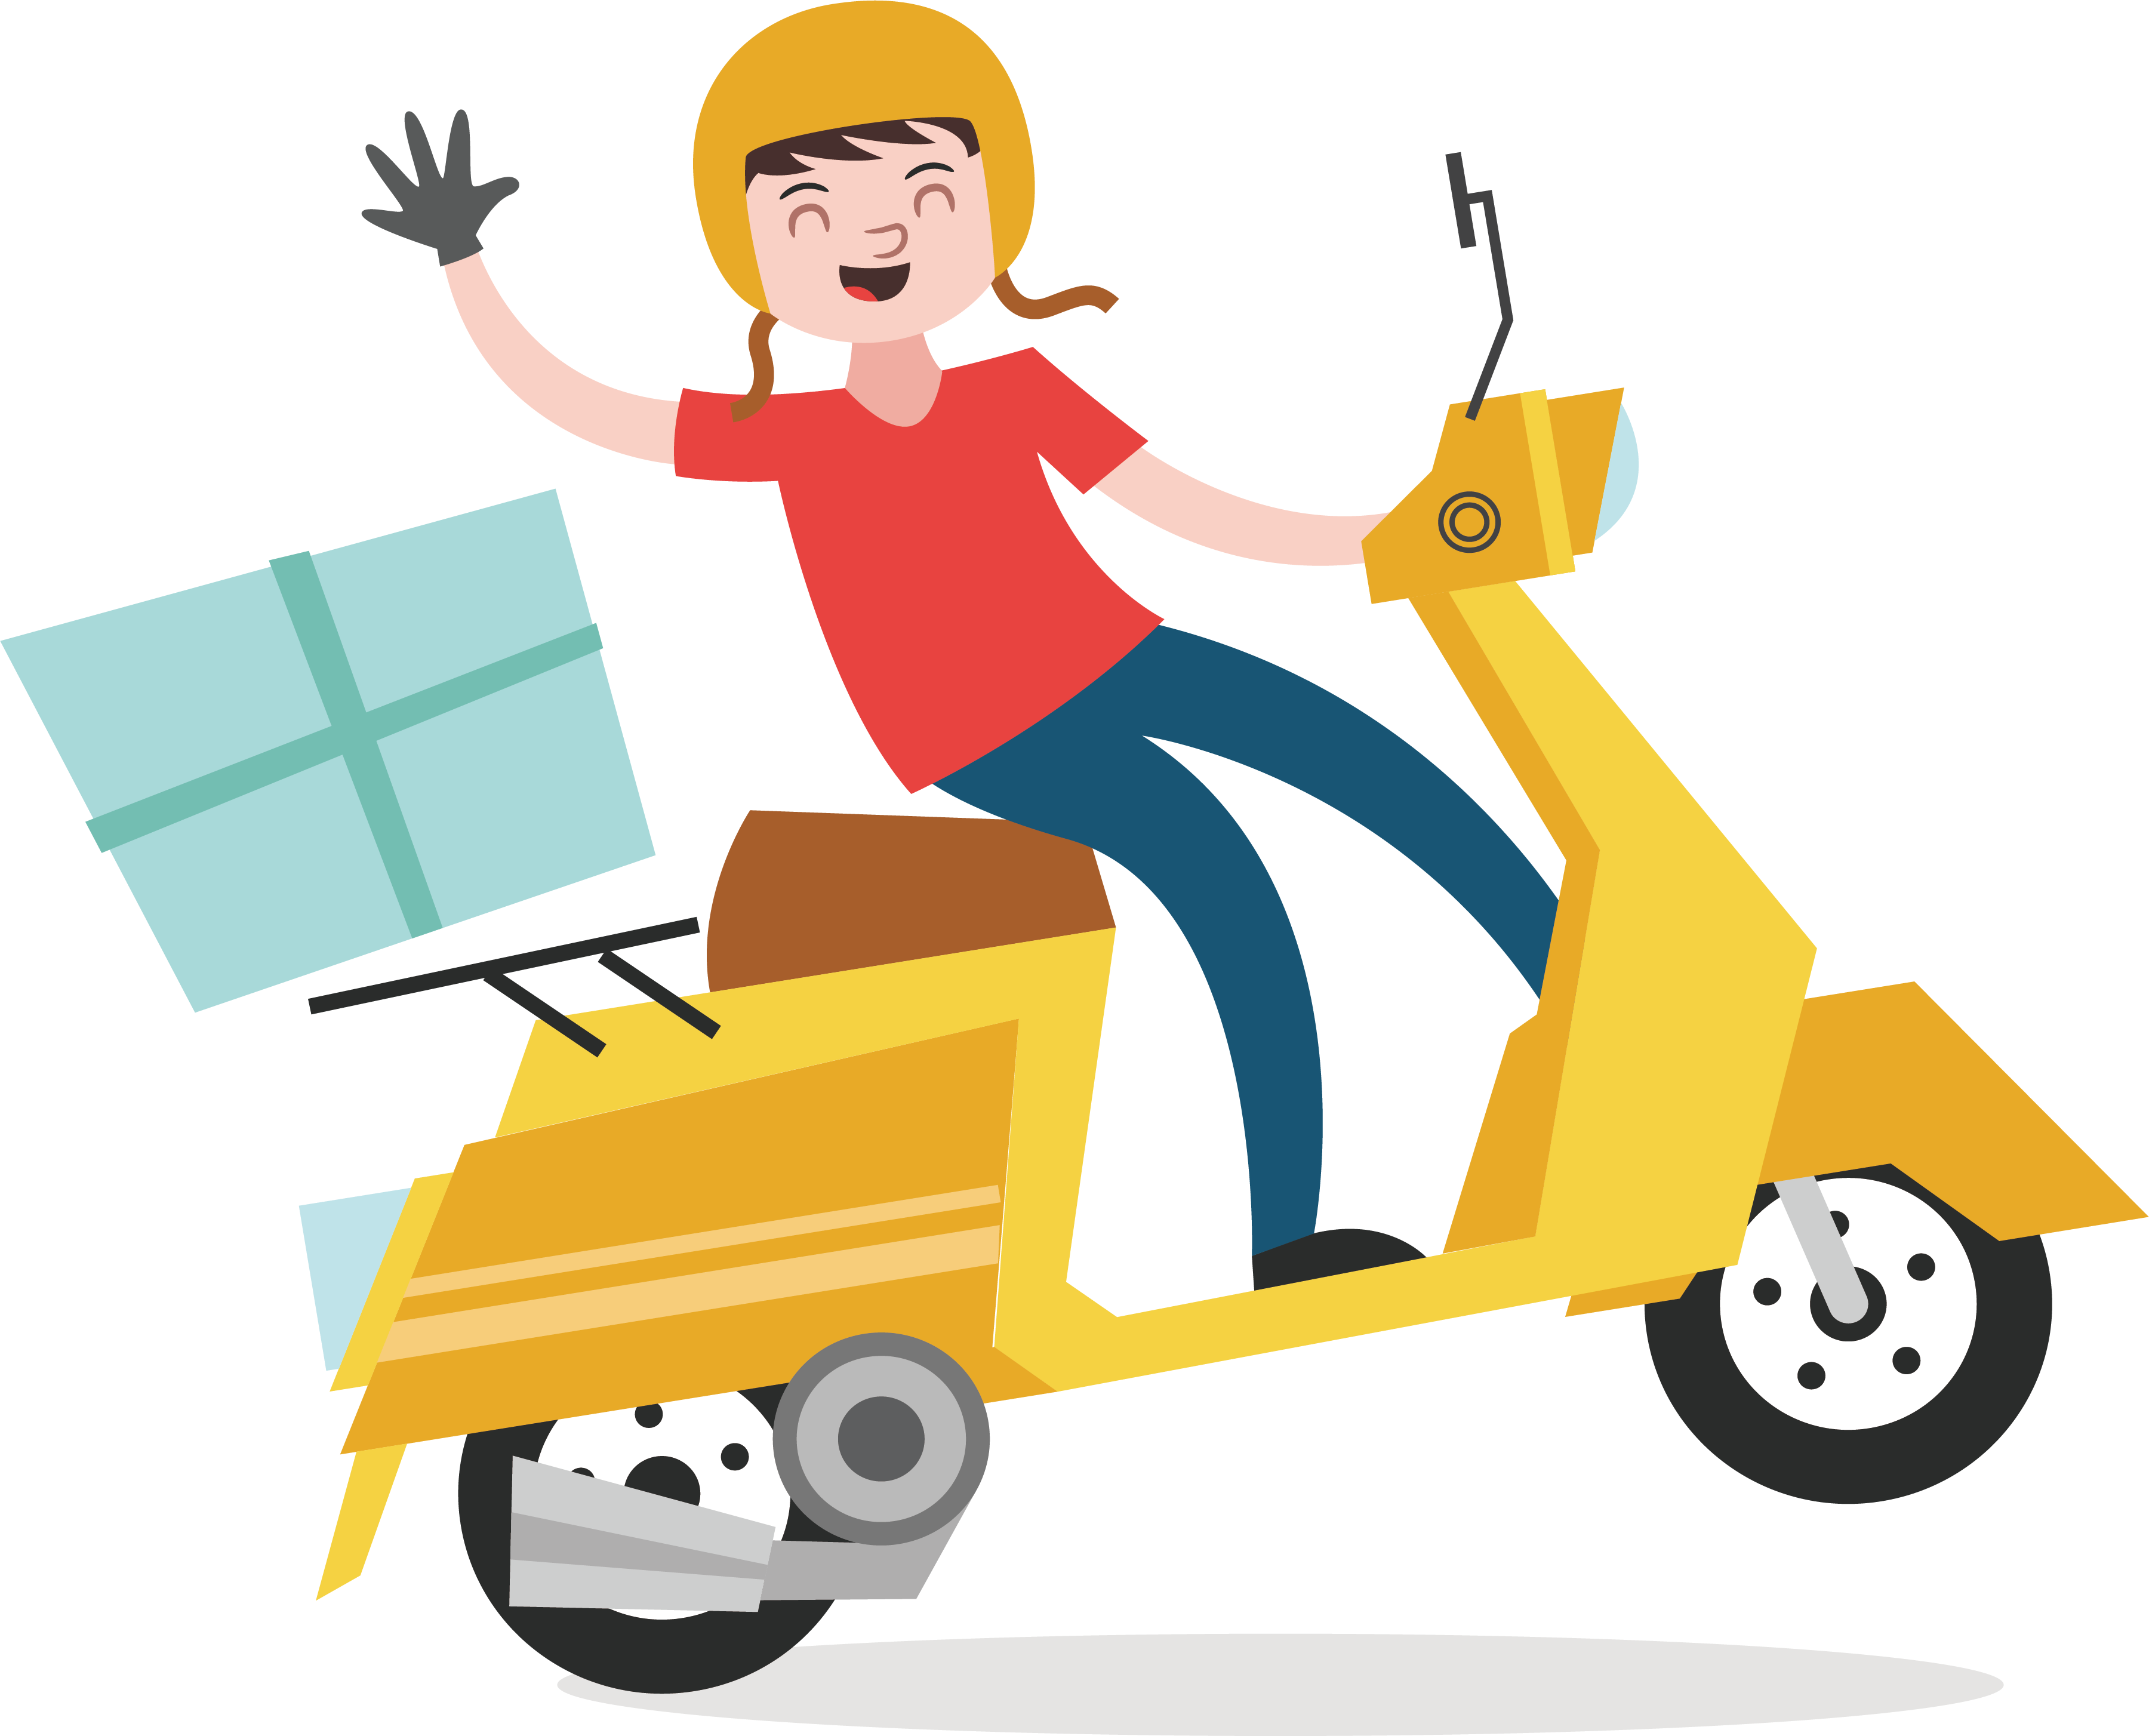 So many deliveries clipart picture transparent library Dunzo – 24*7 Delivery Of All The Things That You Need picture transparent library